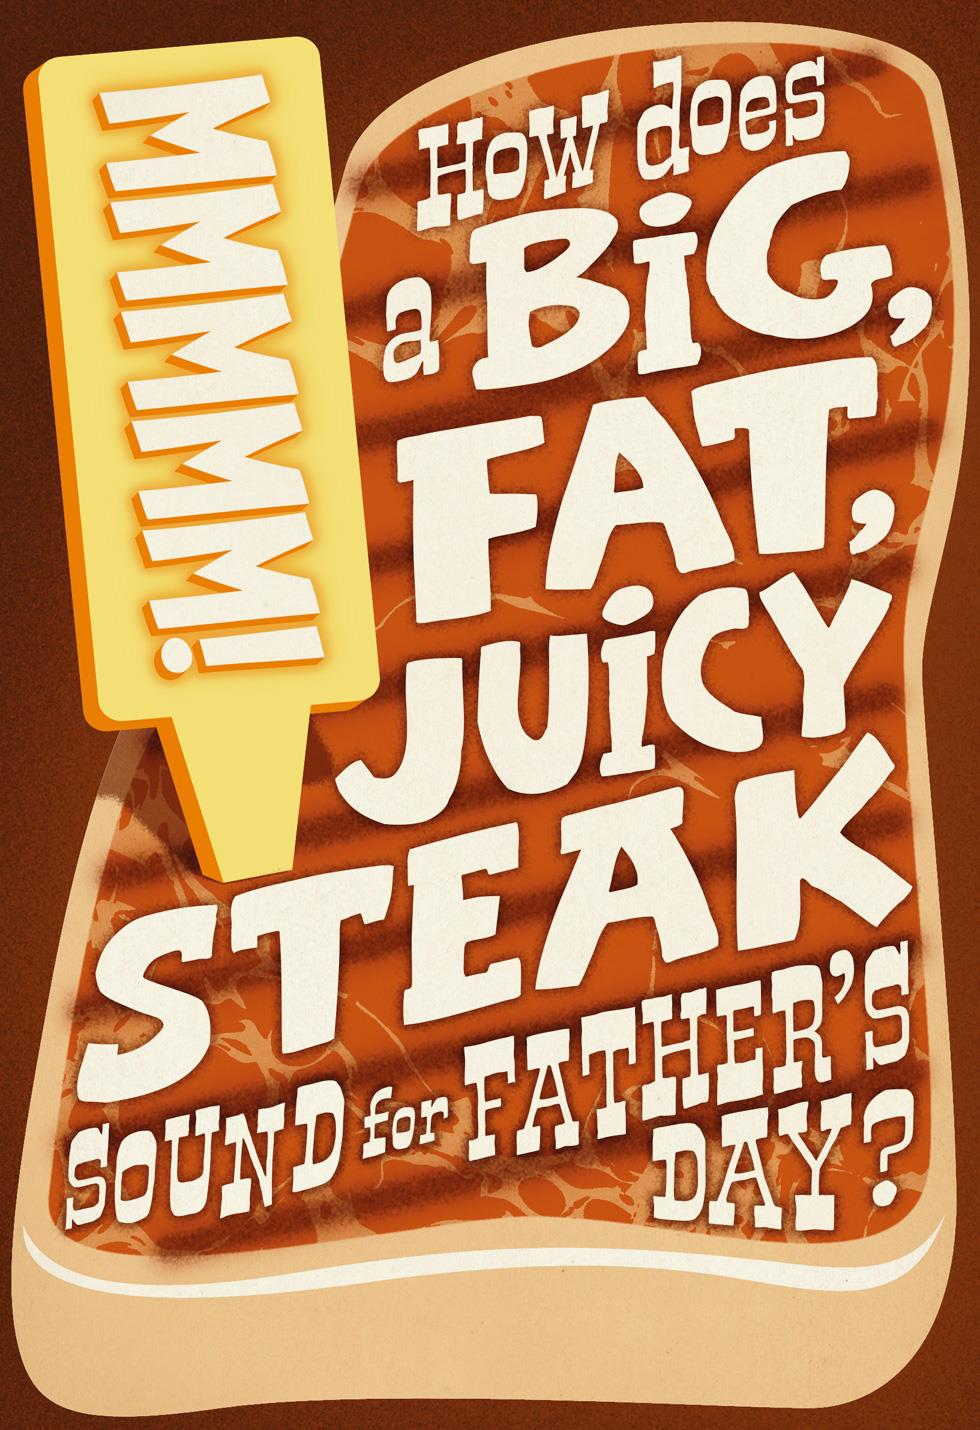 Funny Steak Jokes Father S Day Card Greeting Cards